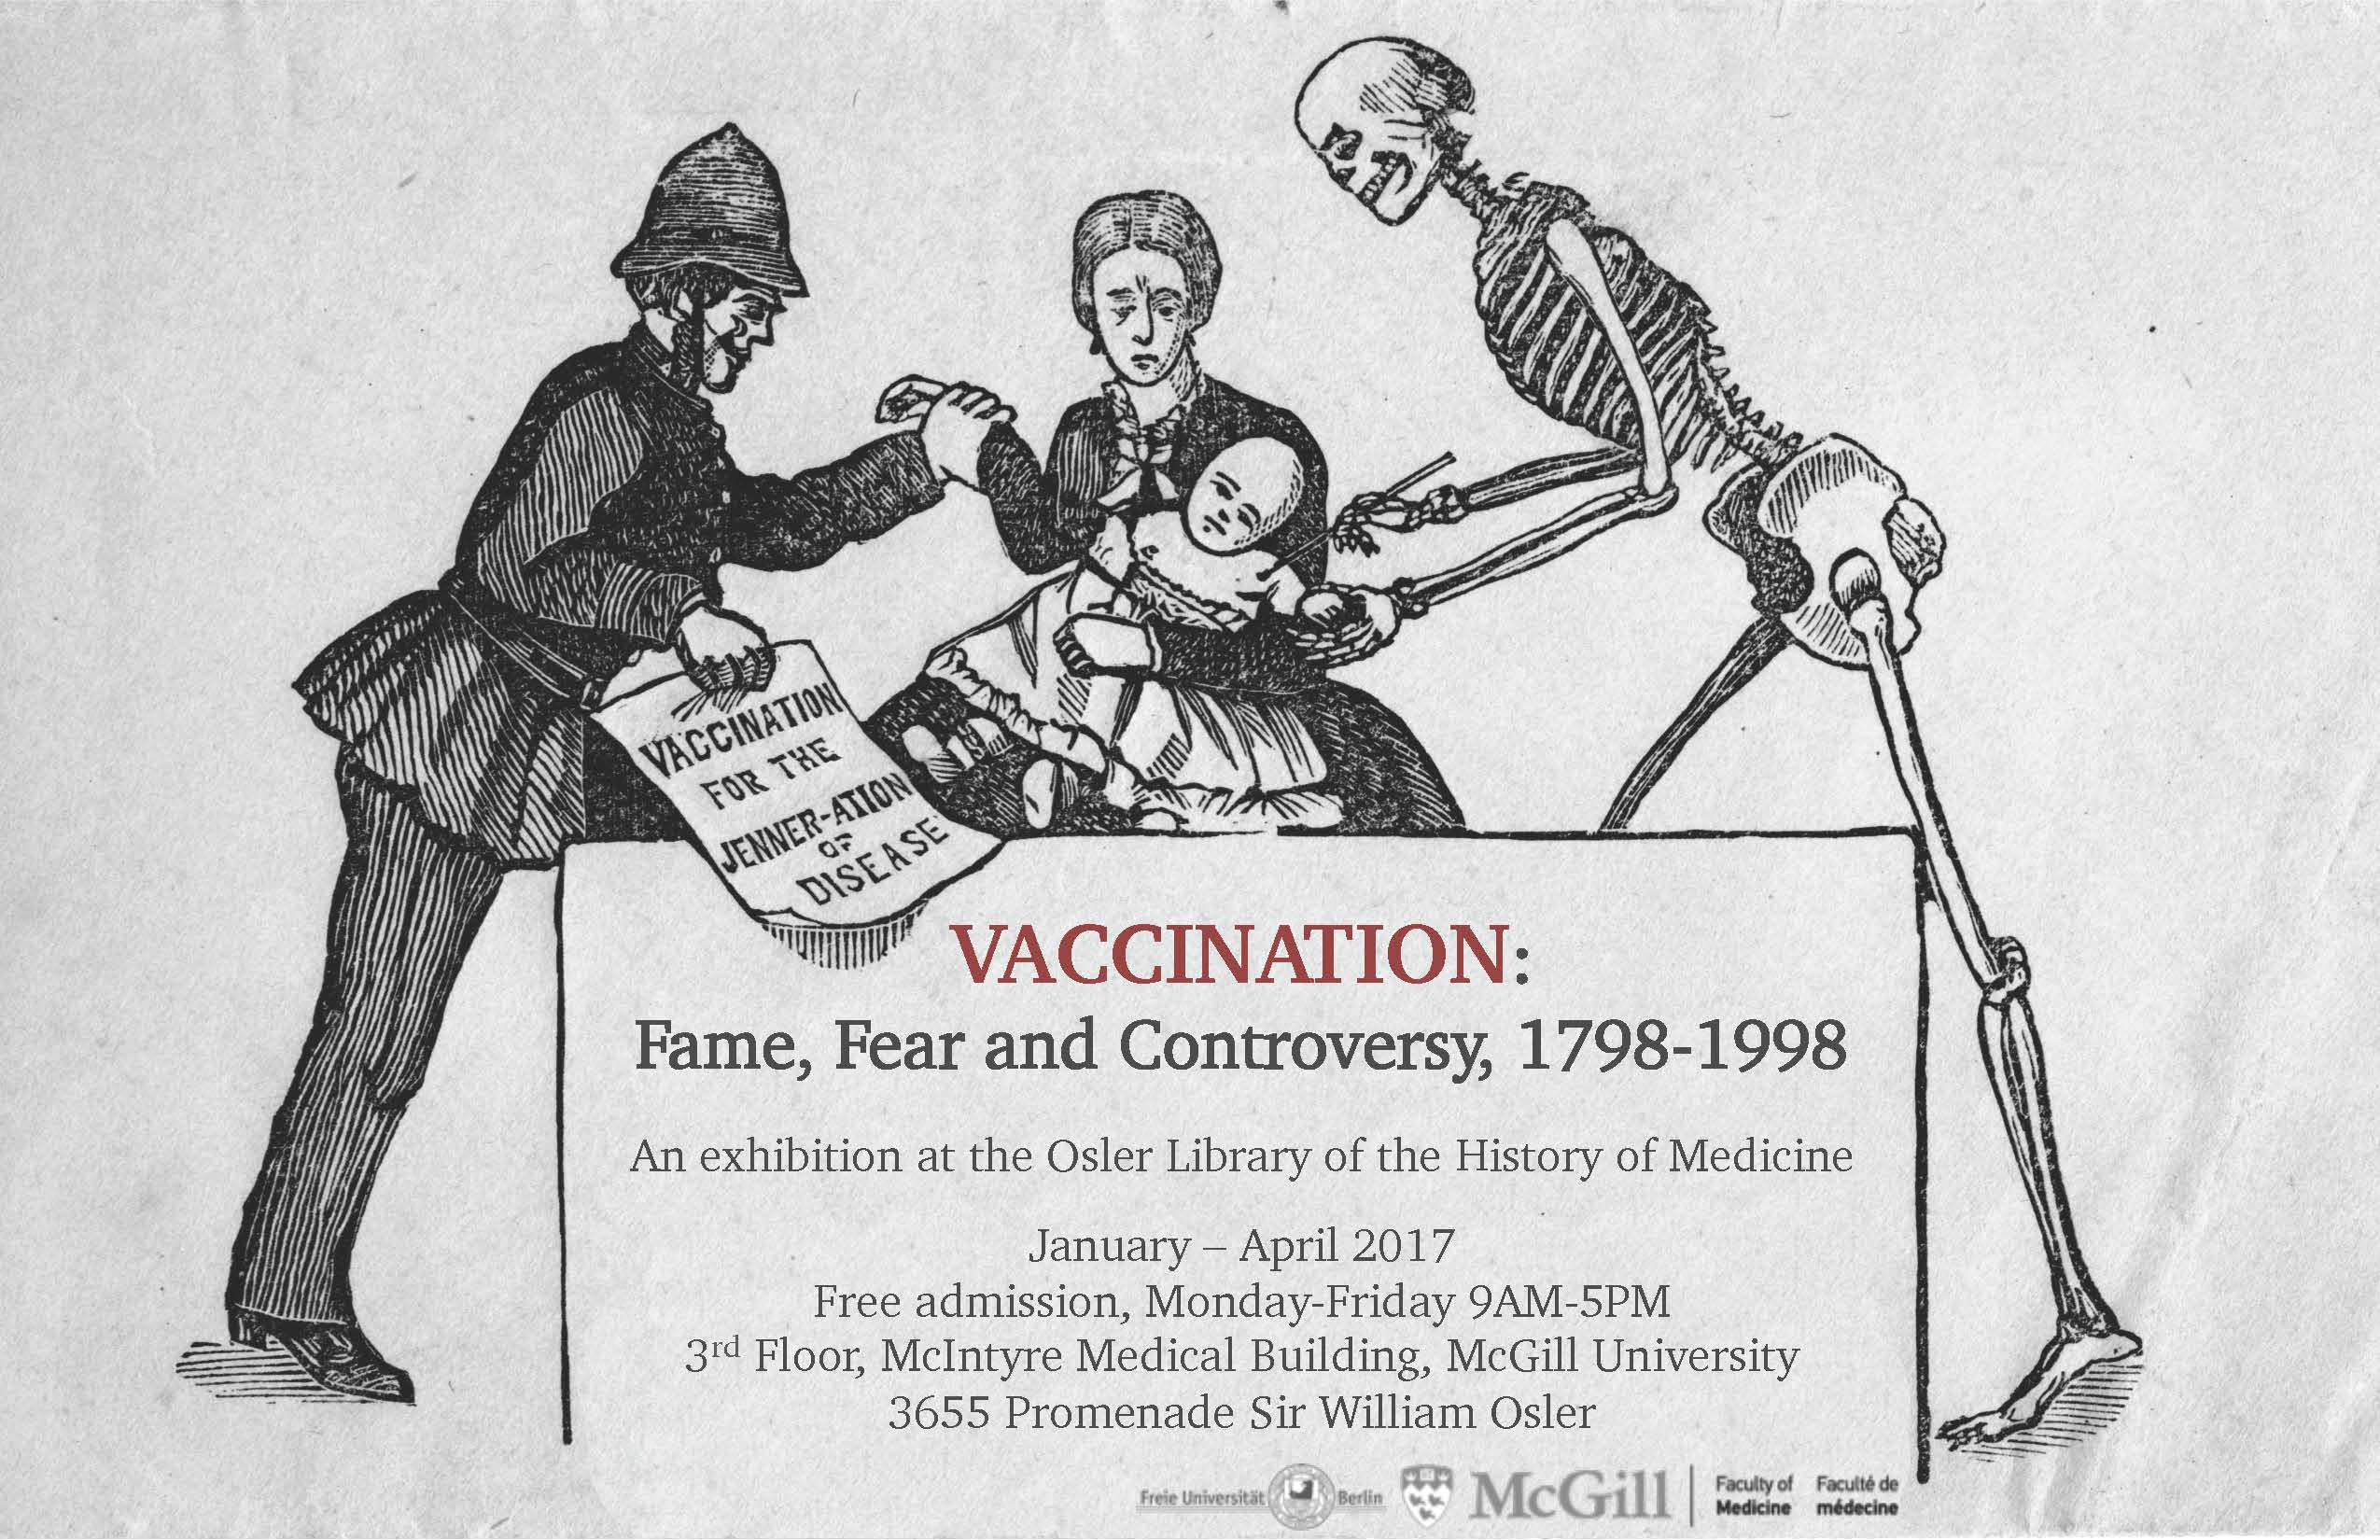 Vaccination: Fame, Fear and Controversy, 1798-1998